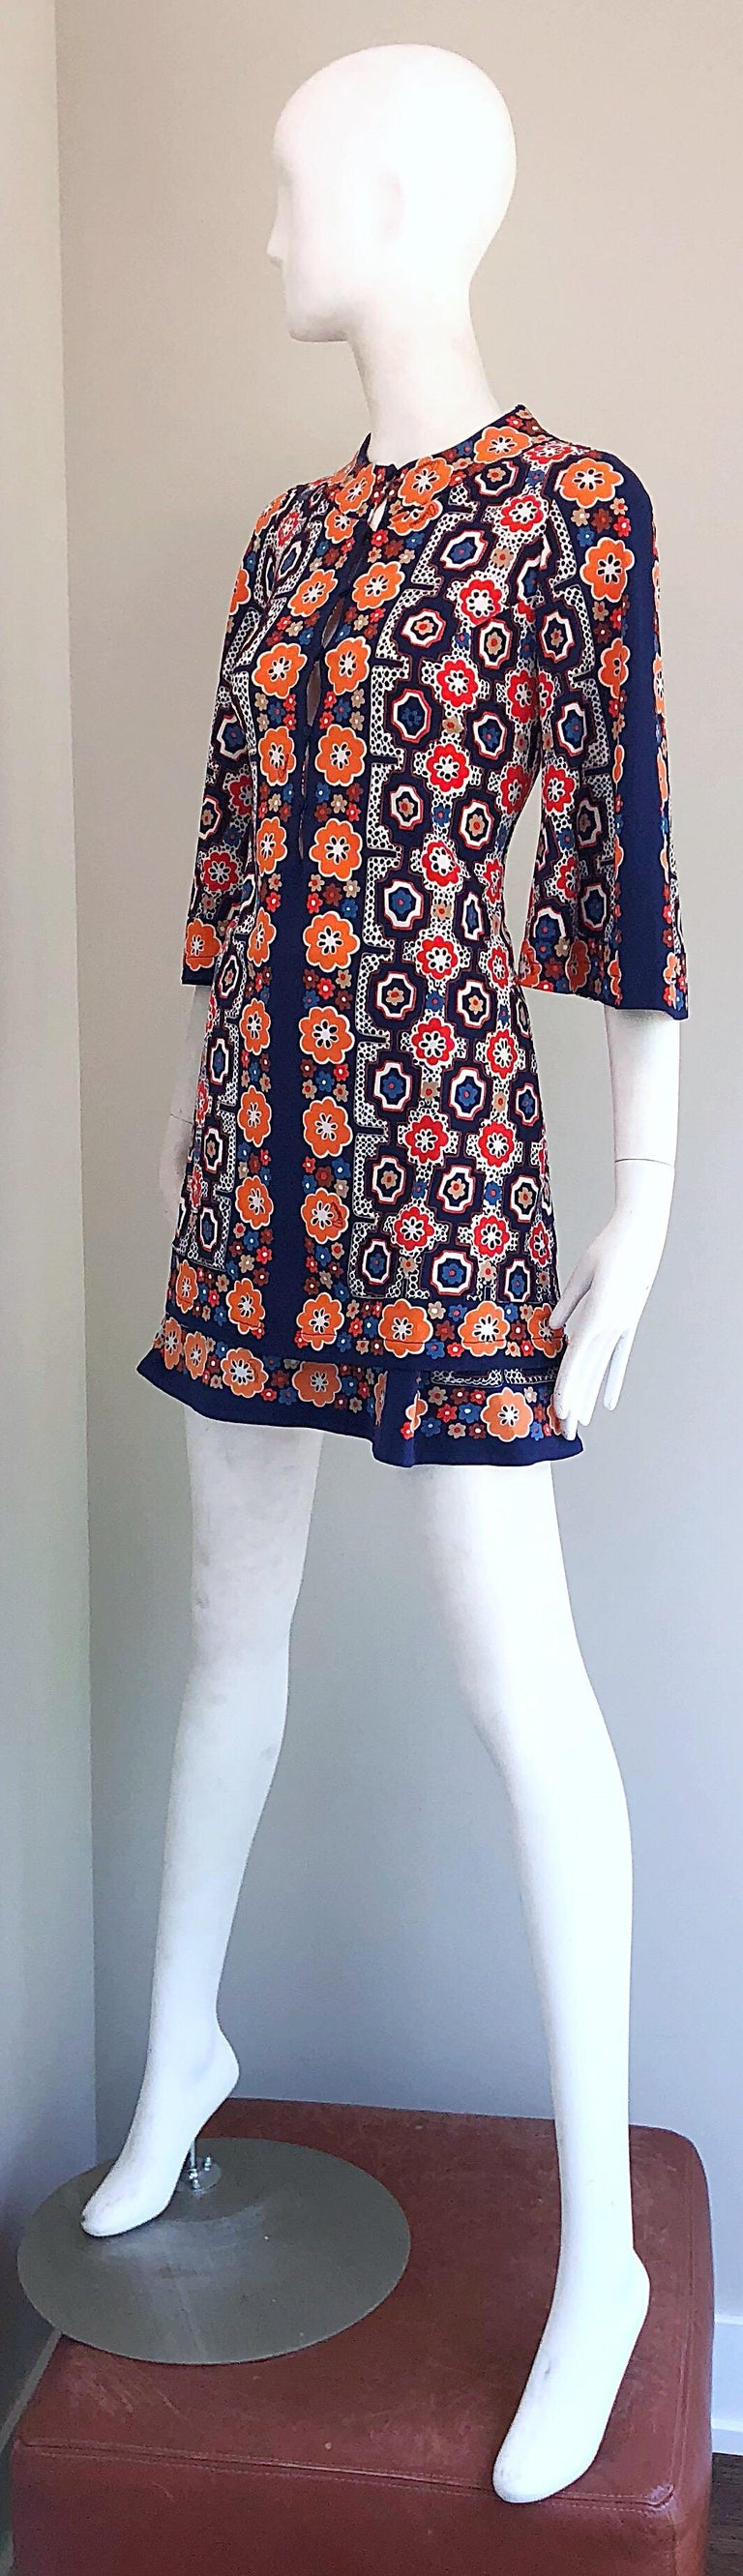 1960s Armonia Italian Jersey Bell Sleeve Vintage 60s Mod Tunic + Mini Skirt For Sale 10